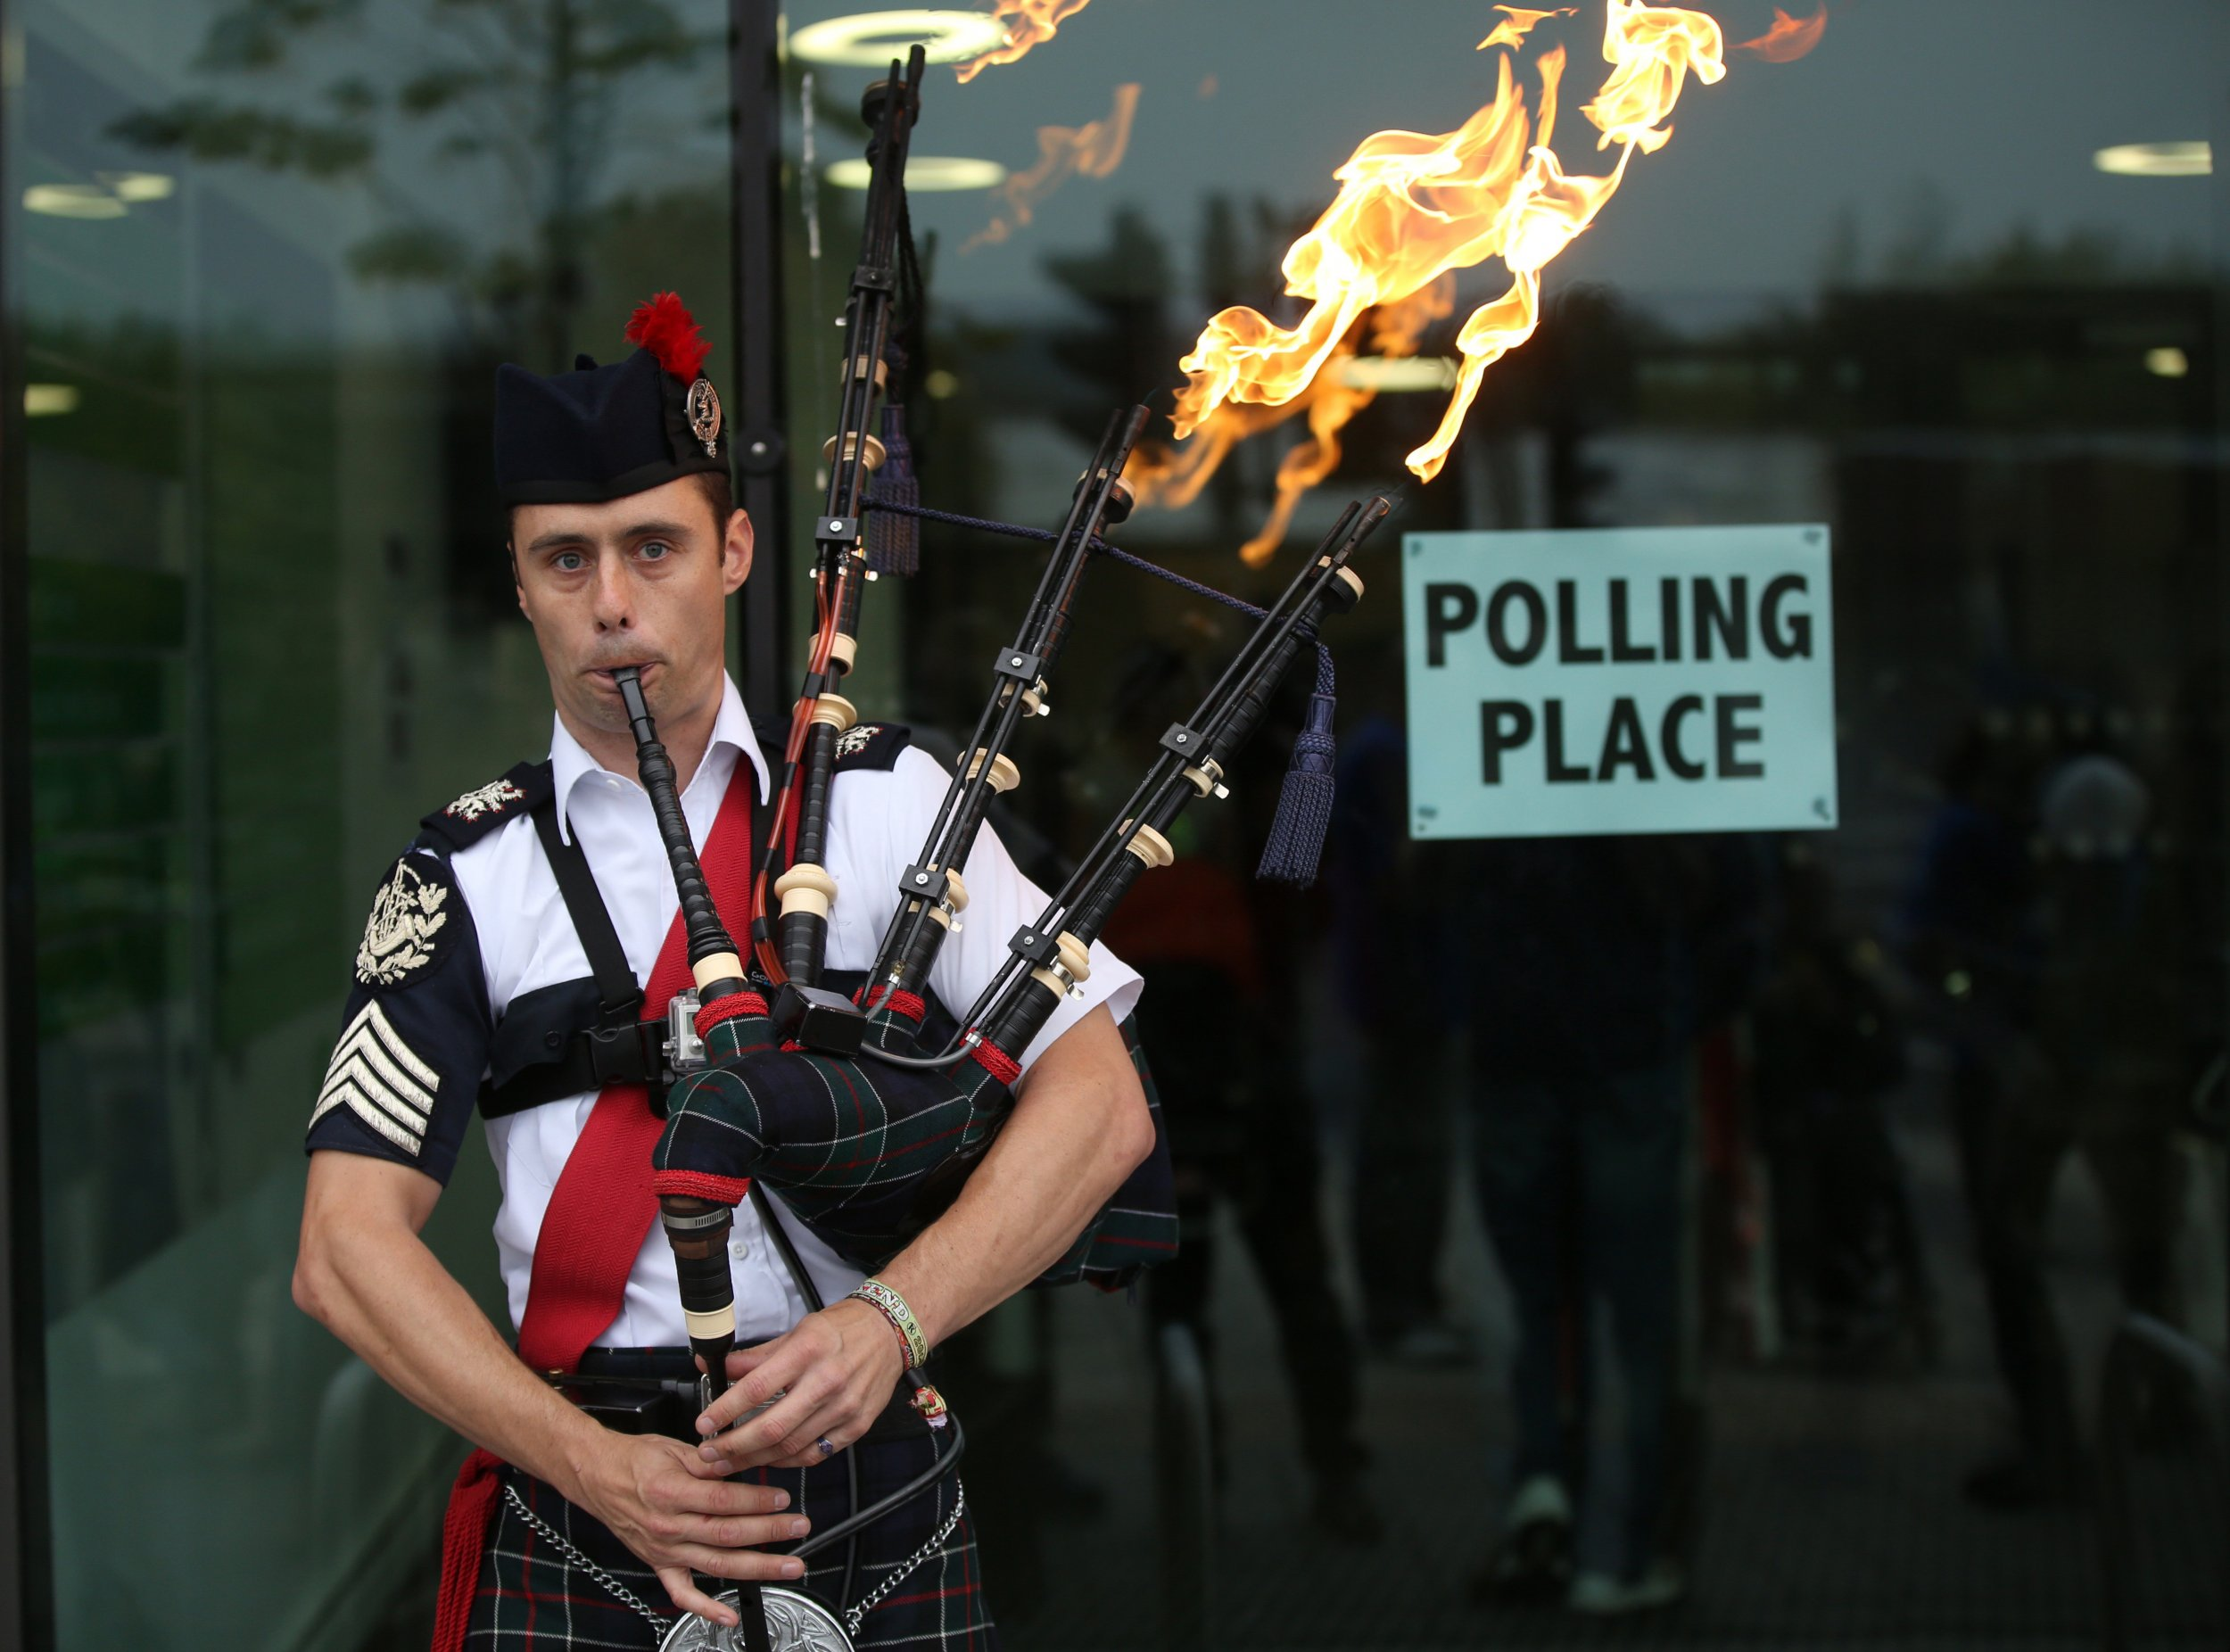 Flaming bagpipes